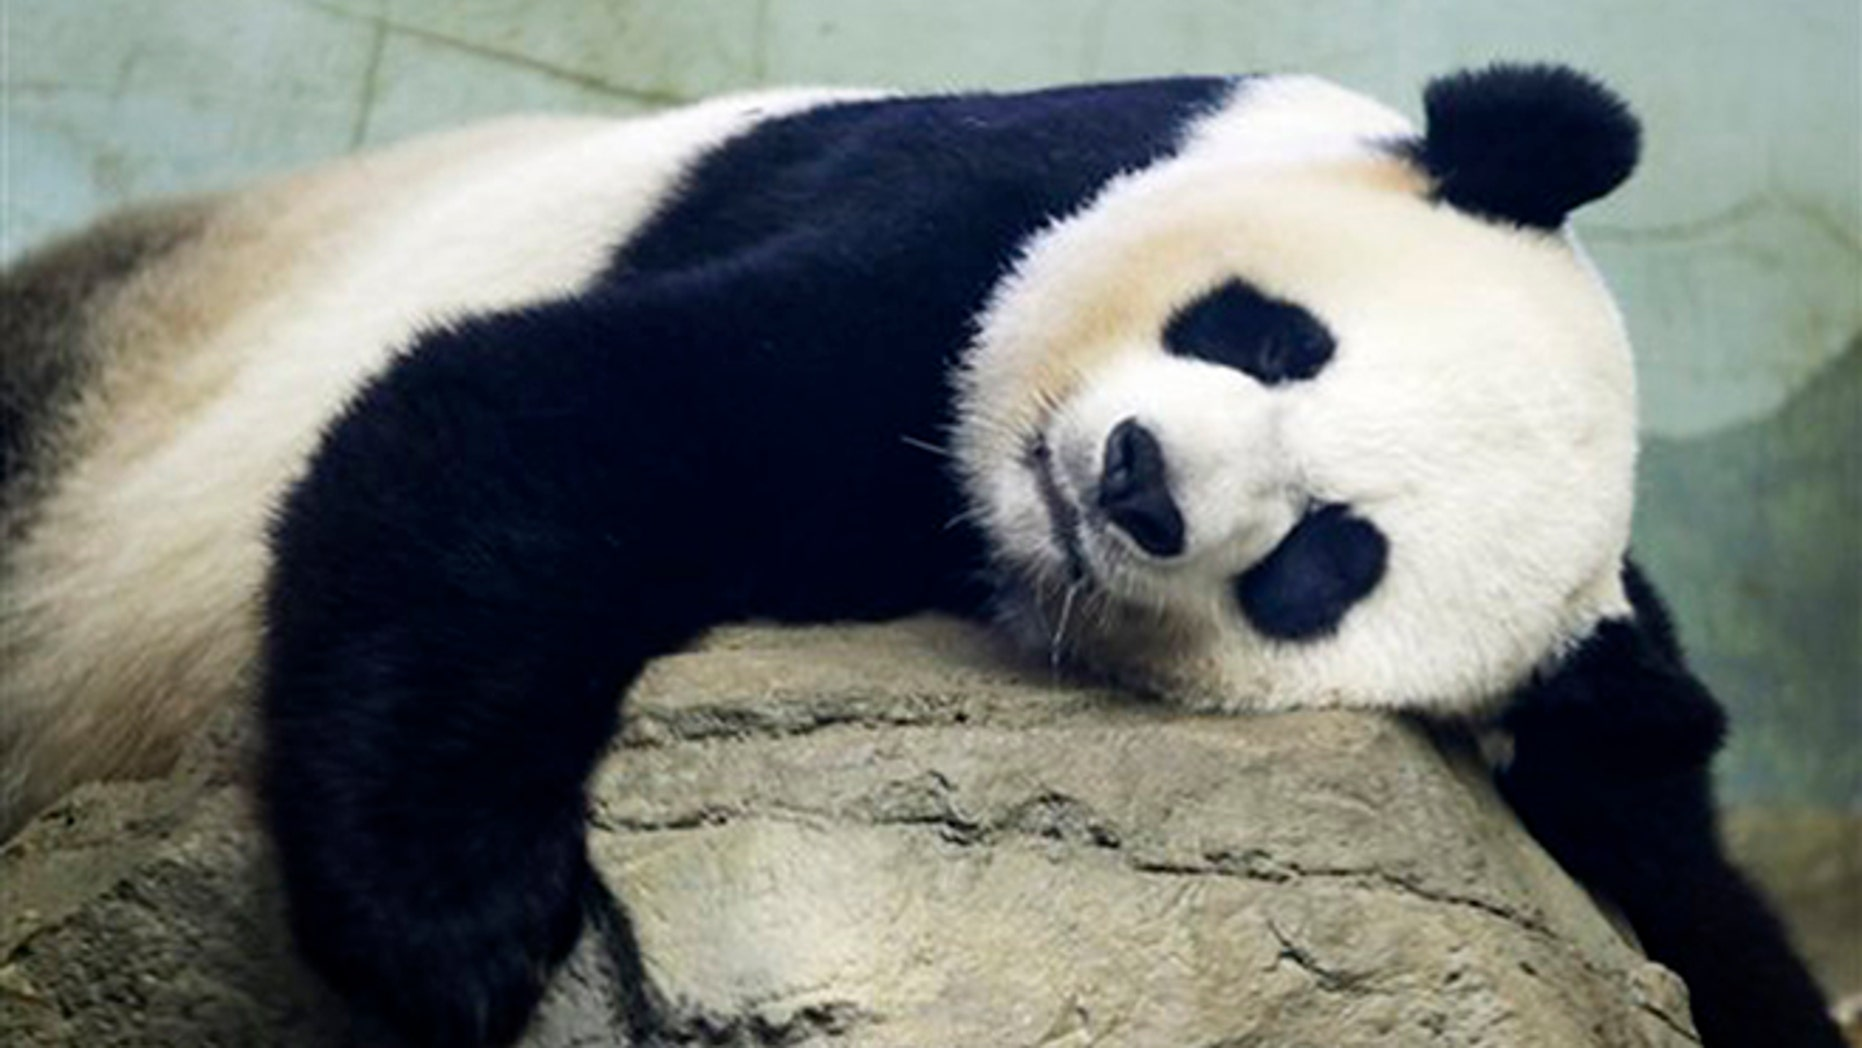 The Smithsonian National Zoo's Giant Panda Mei Xiang, mother of panda youngster Bao Bao who was born Aug. 23, 2013, sleeps in the indoor habitat at the zoo in Washington, Wednesday, Aug. 12, 2015. (AP Photo/Jacquelyn Martin)